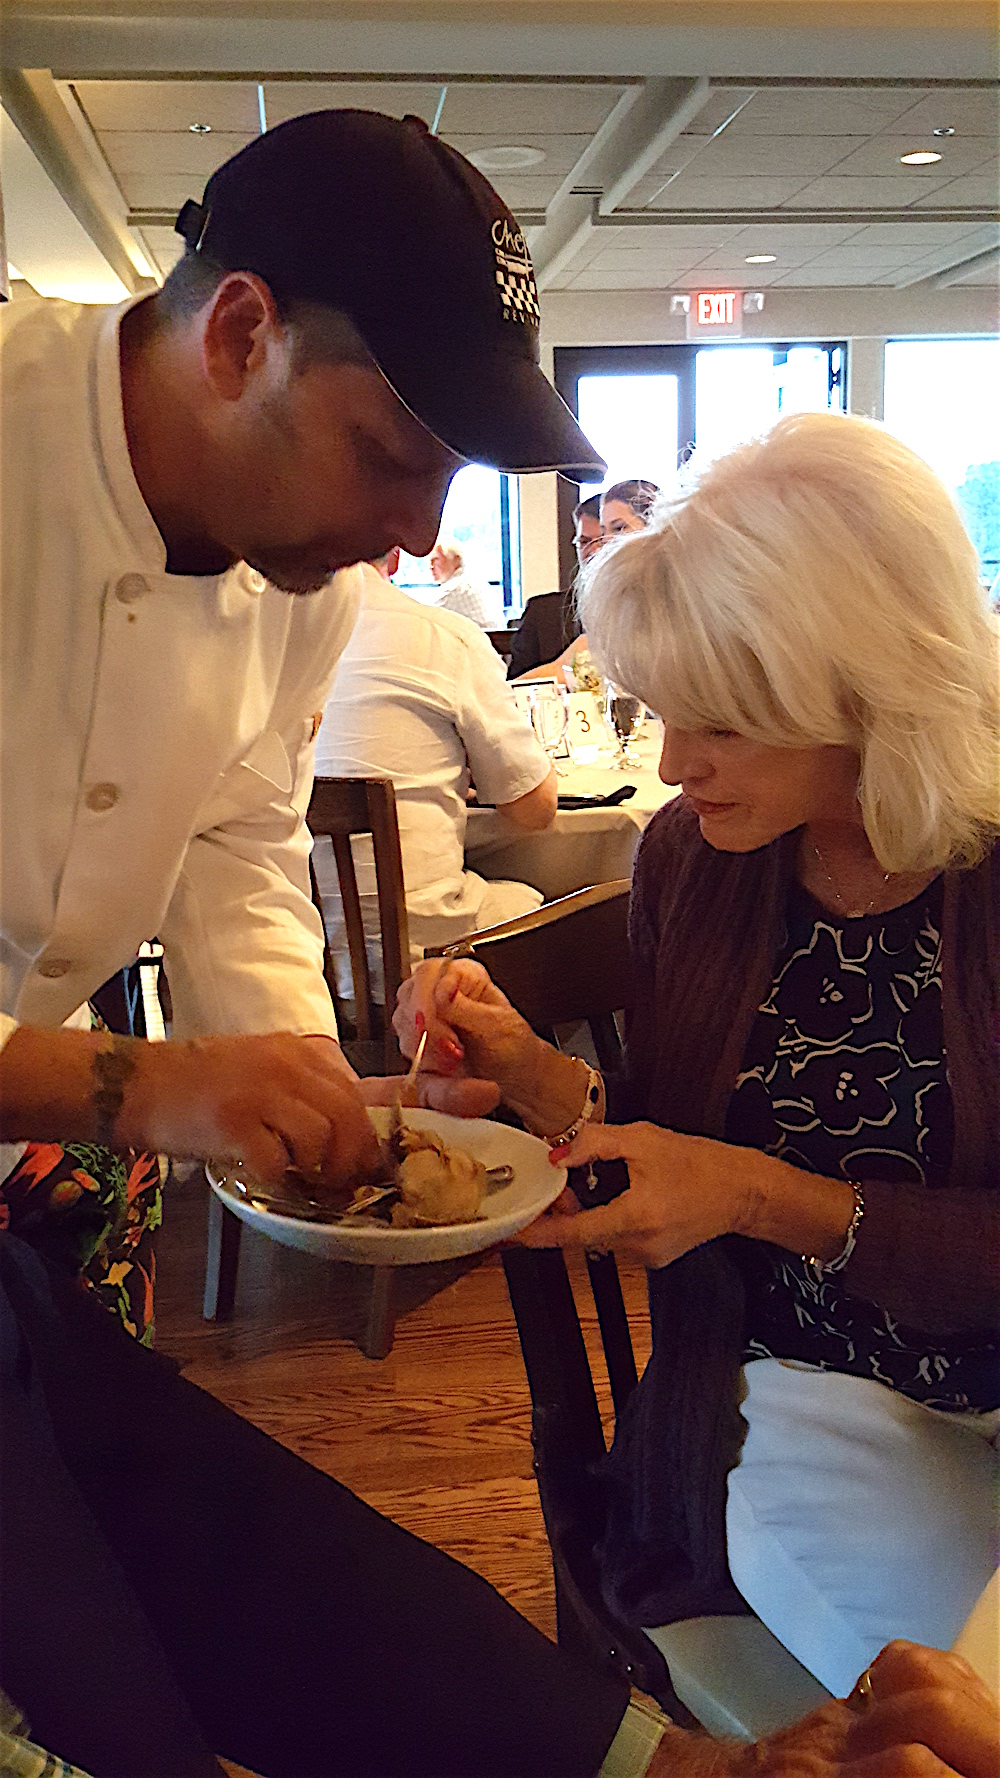 The chef had us all try some black garlic that he had roasted for 30 days at 110 degrees, if you can believe! Here, Judy Collins Griess is trying it out.